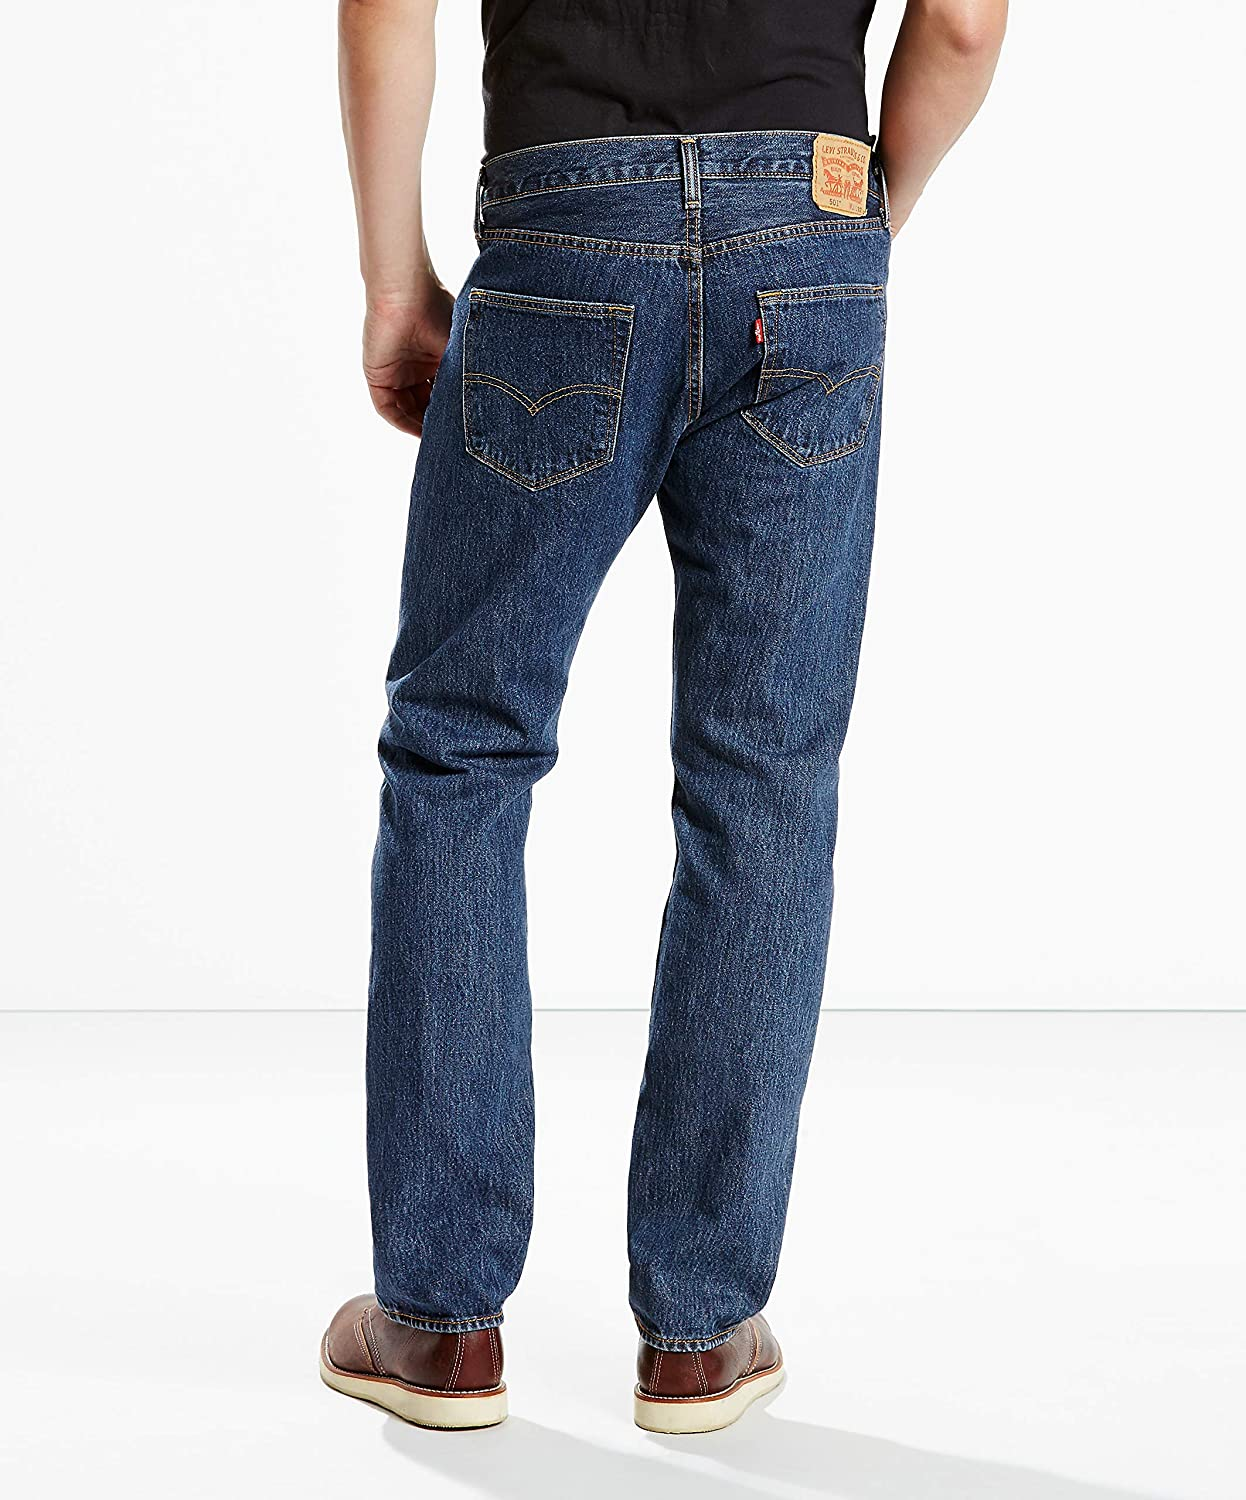 Amazon.com: Levis 501 Original Fit - Pantalones de ...